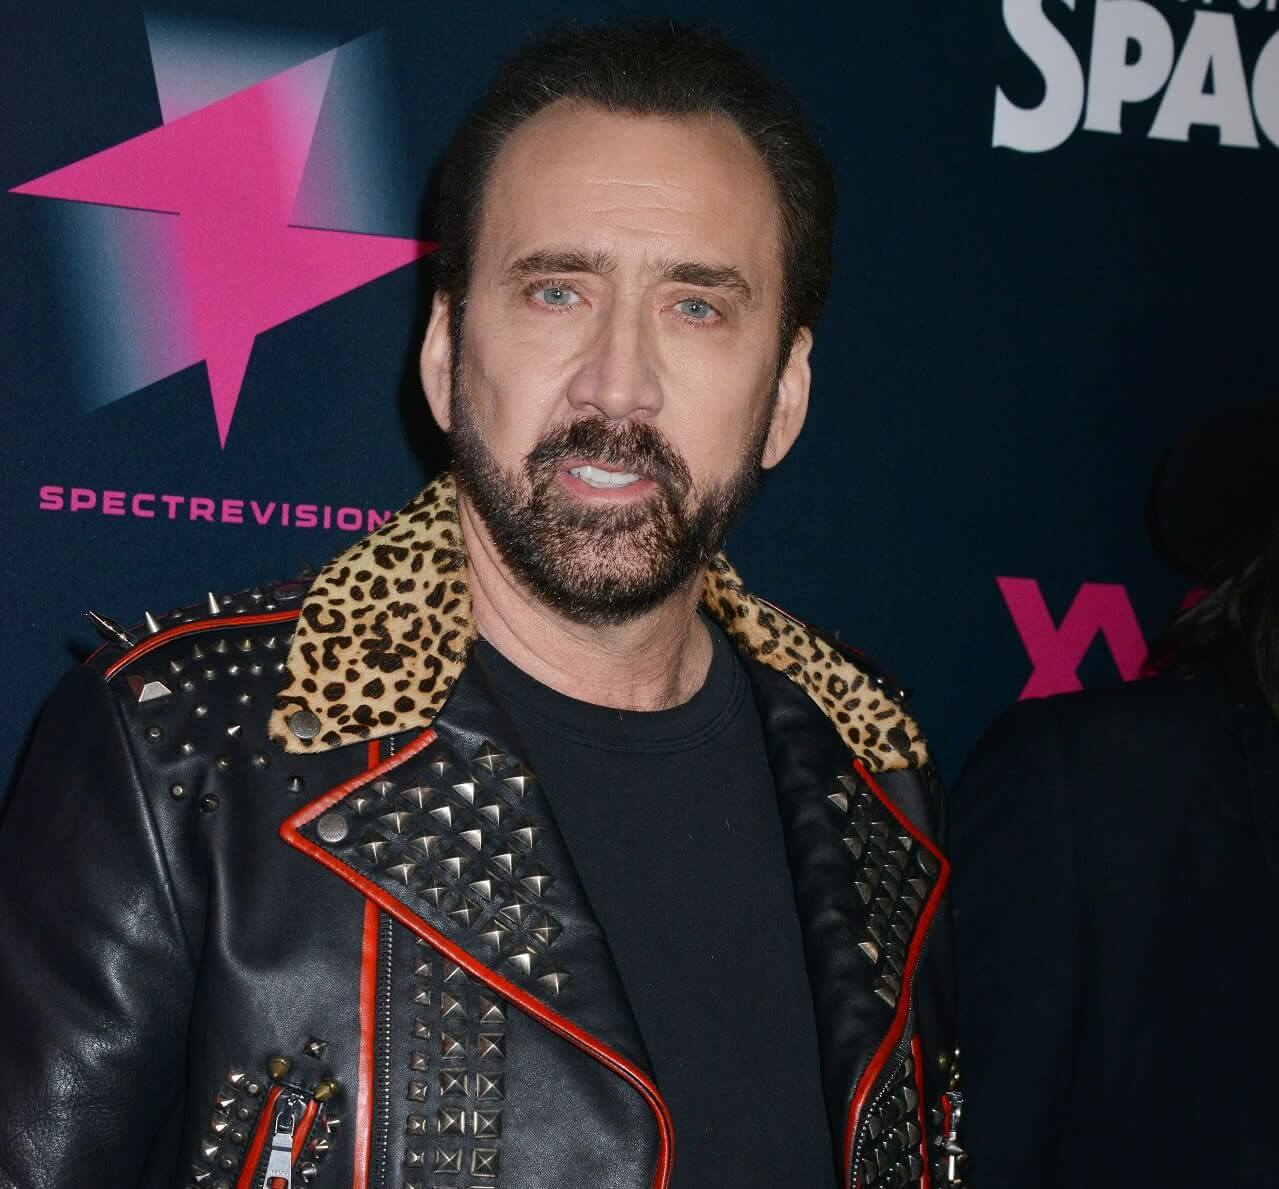 Nicolas Cage tops the list which includes some of Hollywood's biggest names